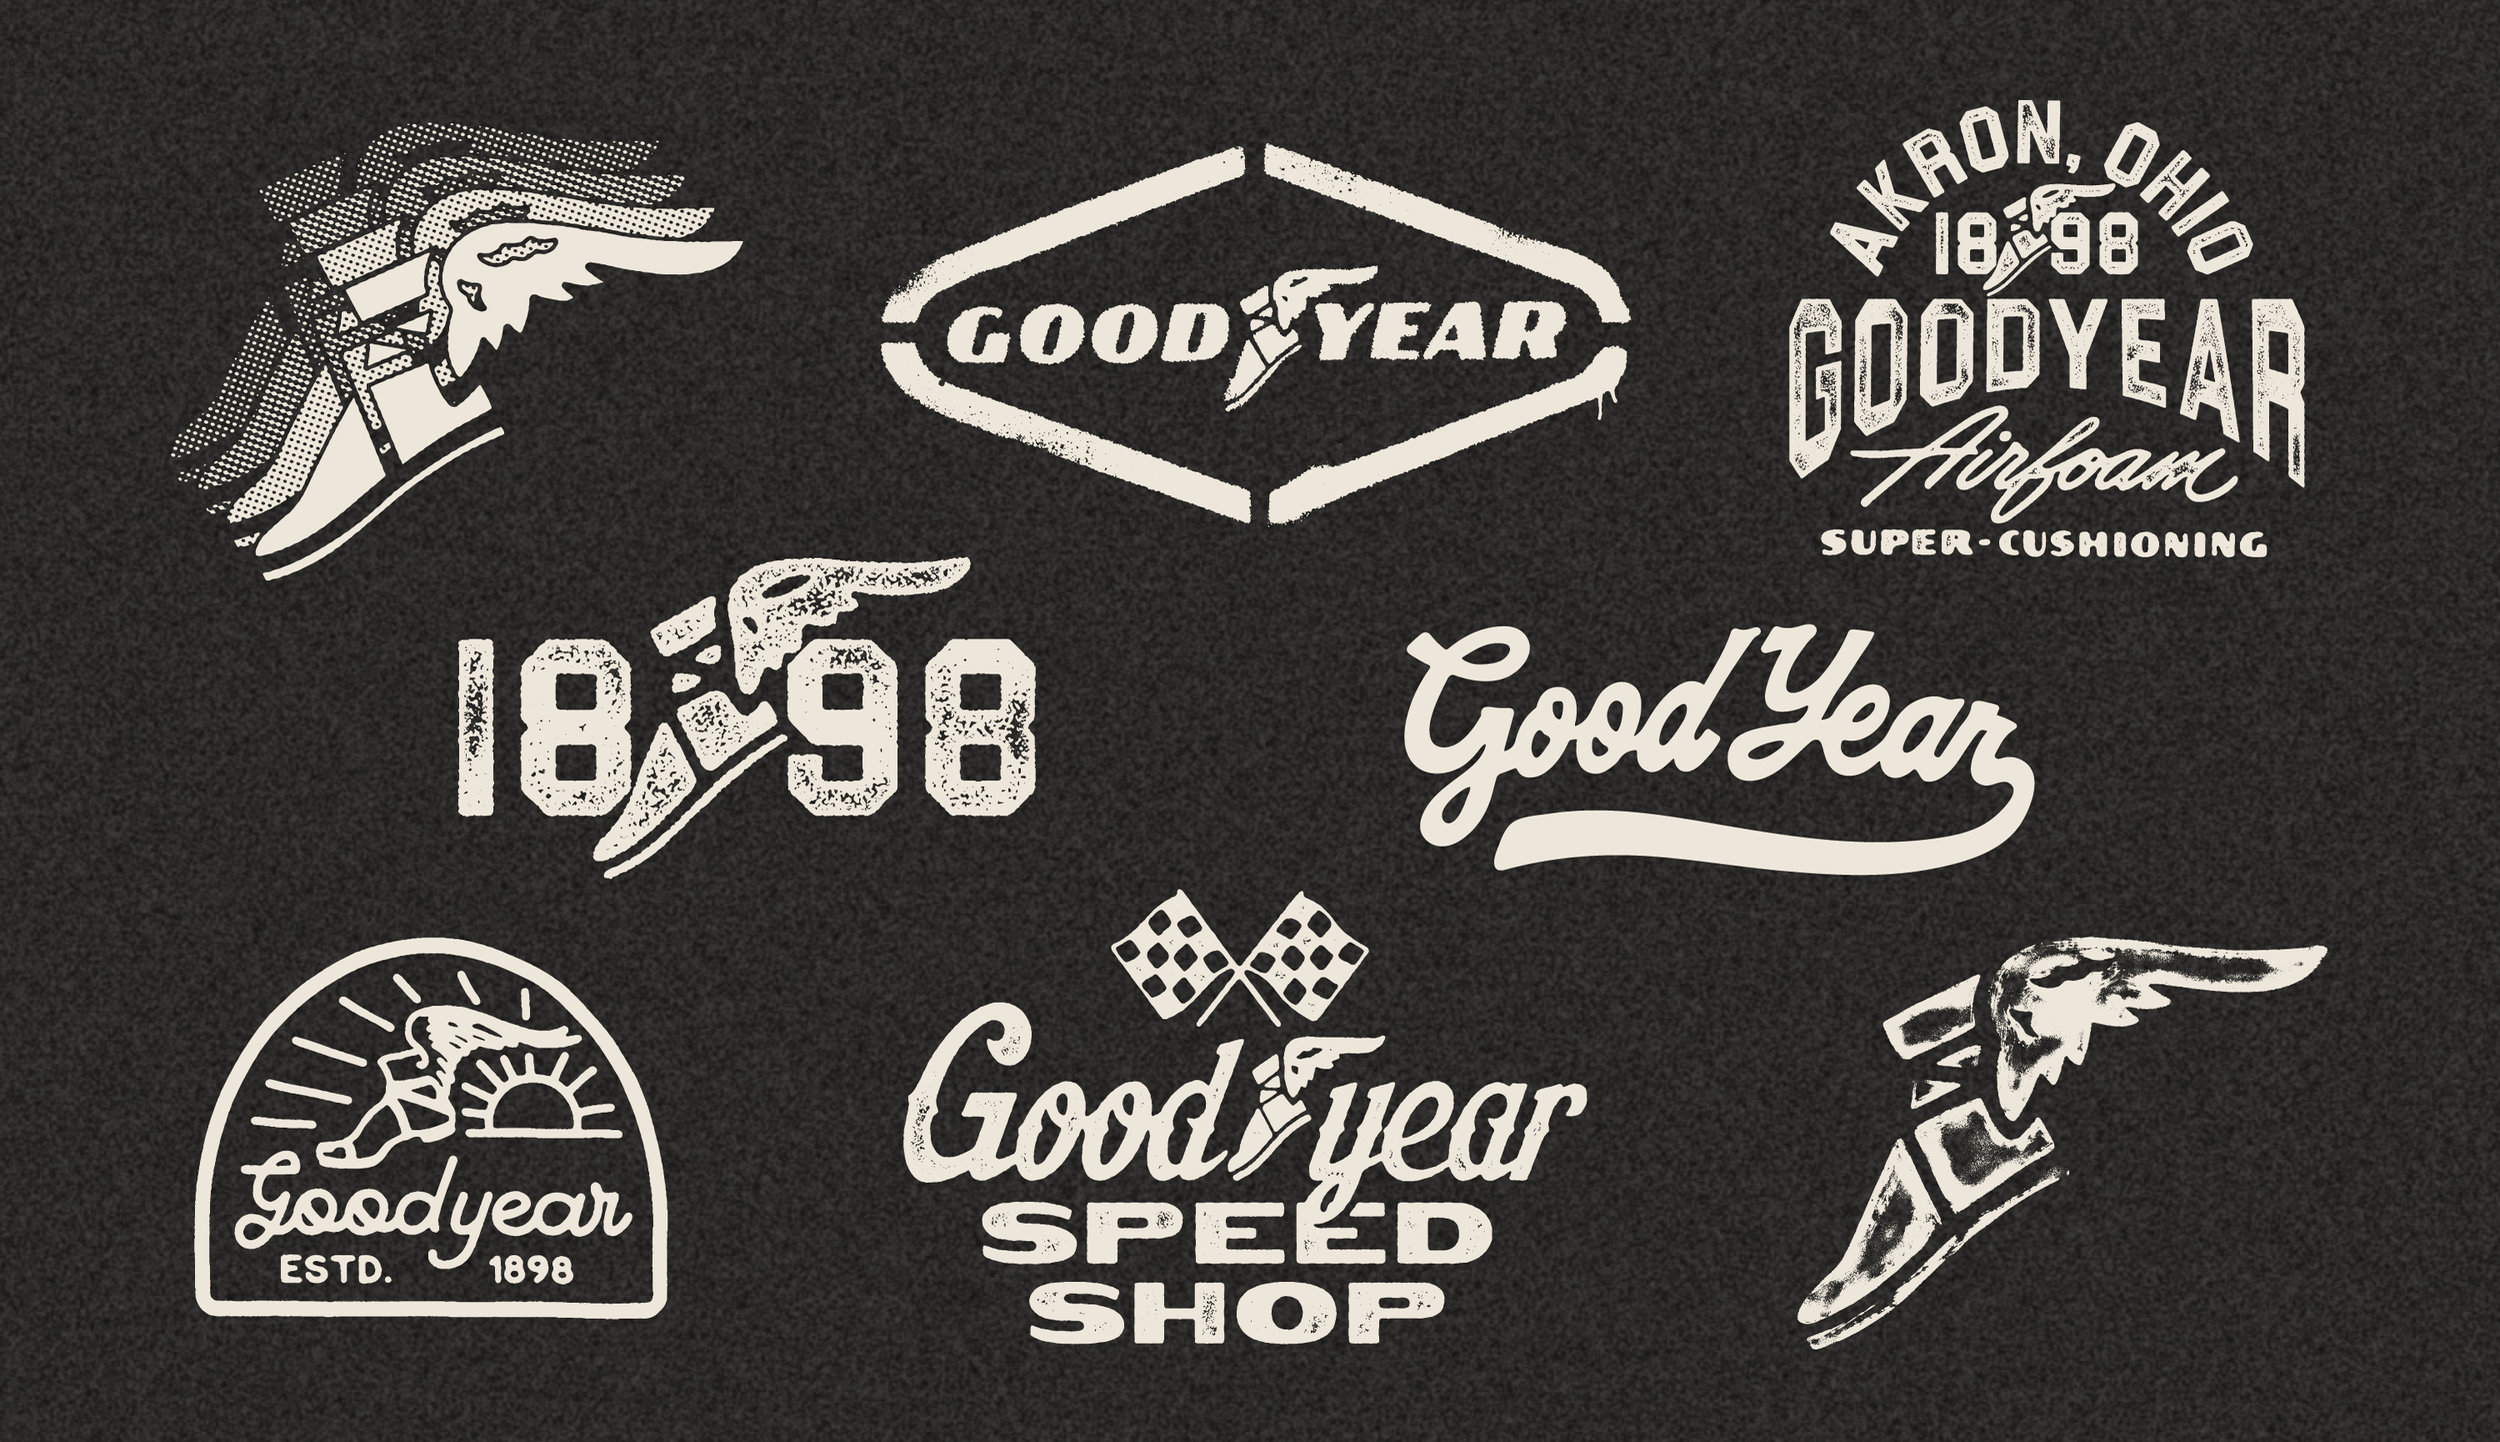 Goodyear-Graphics_Repeat-Pattern-2.jpg